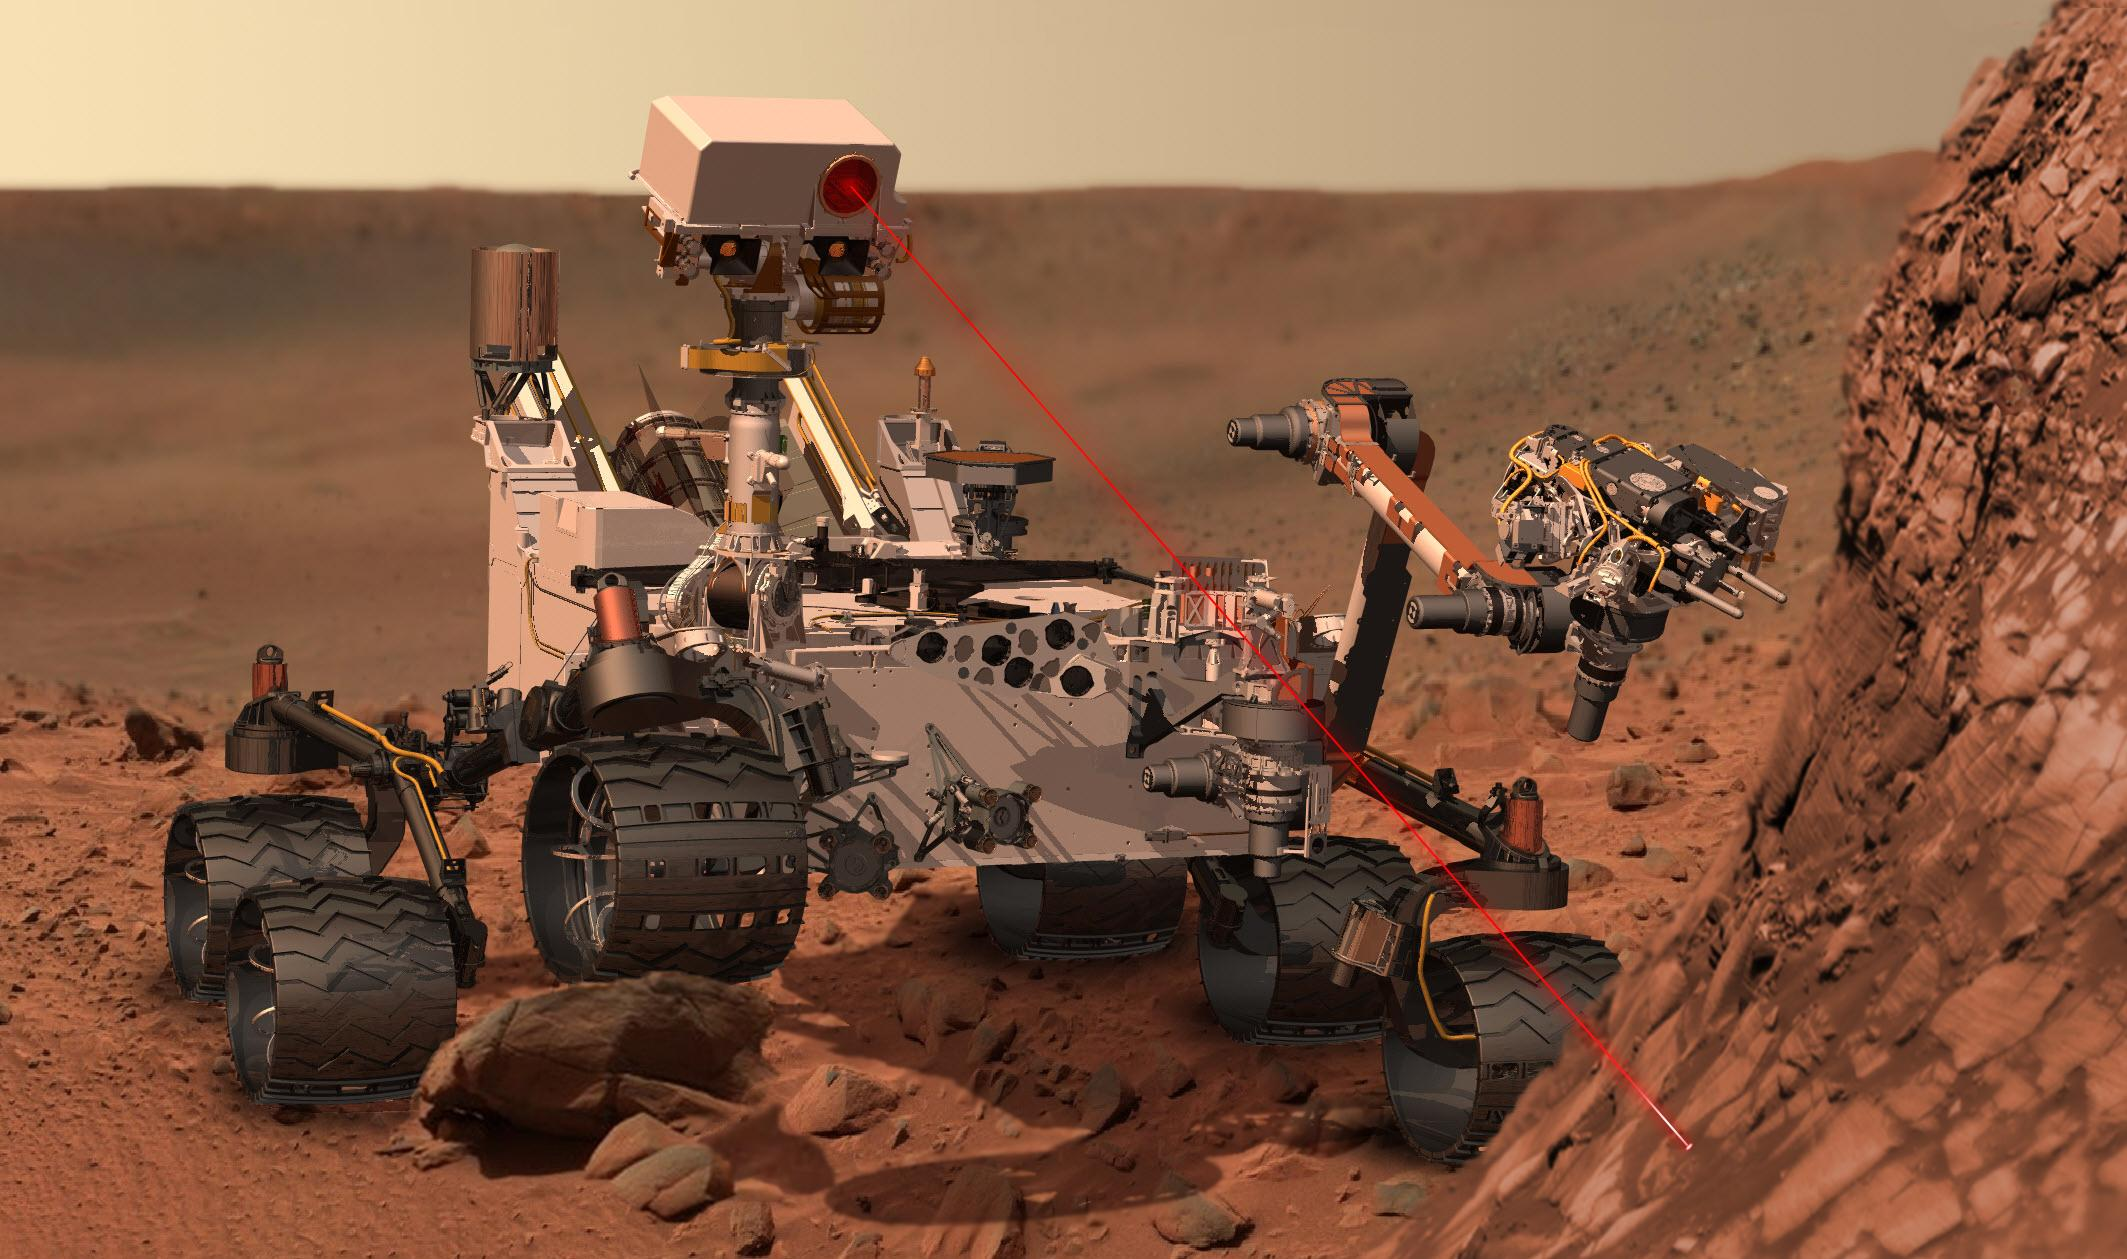 Evidence_of_Water_found_on_Mars_by_NASA_Curiosity_Rover_476242975